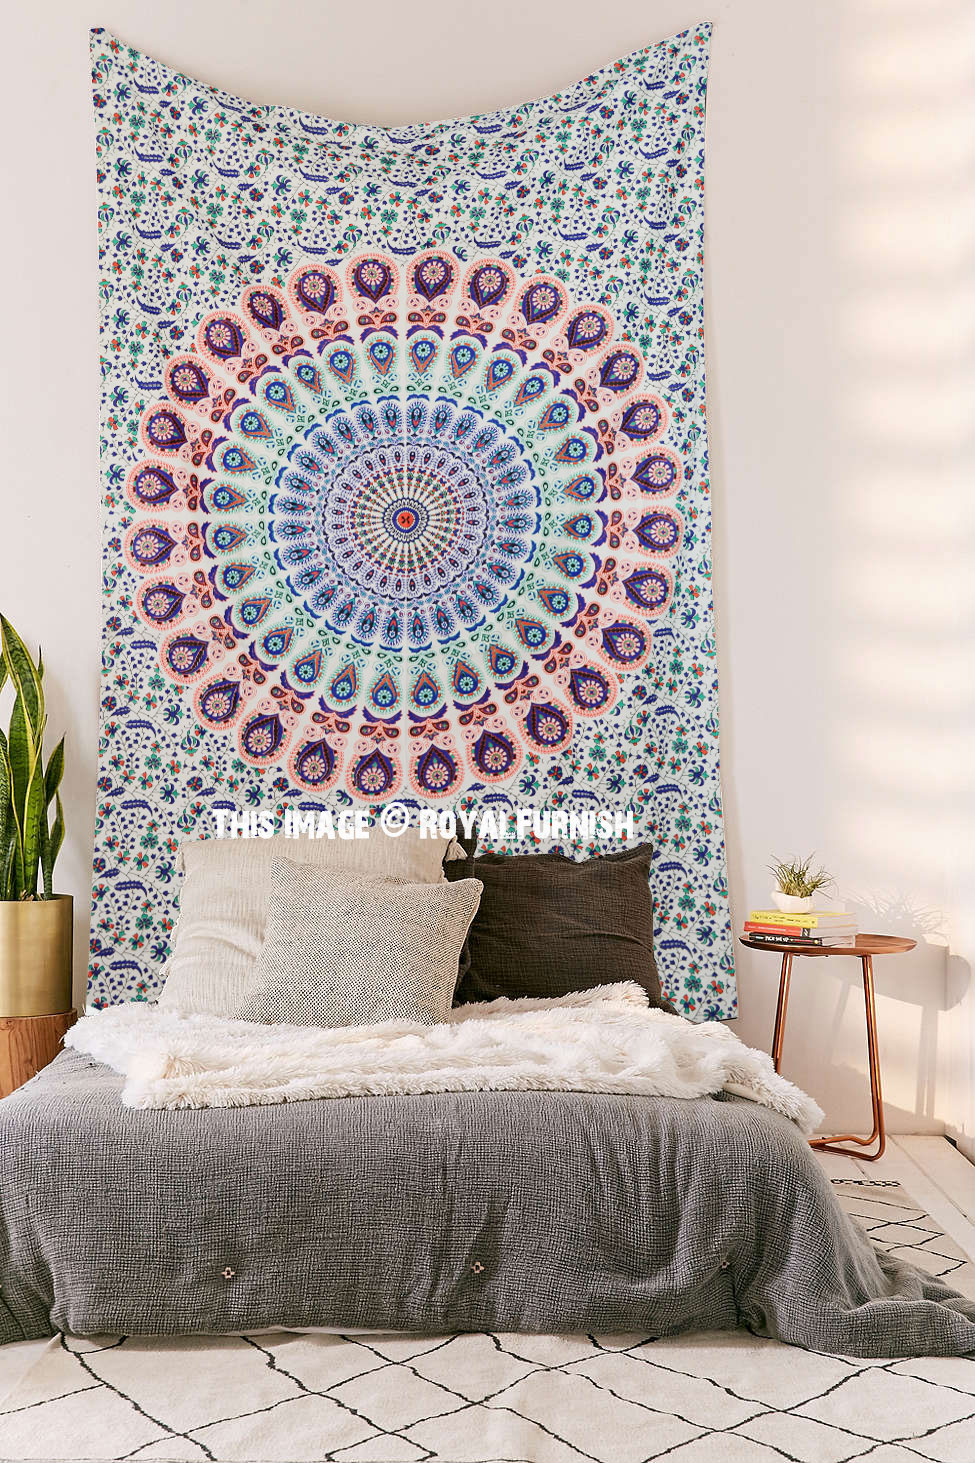 Small Multi Leafs White Mandala Bohemian Wall Tapestry